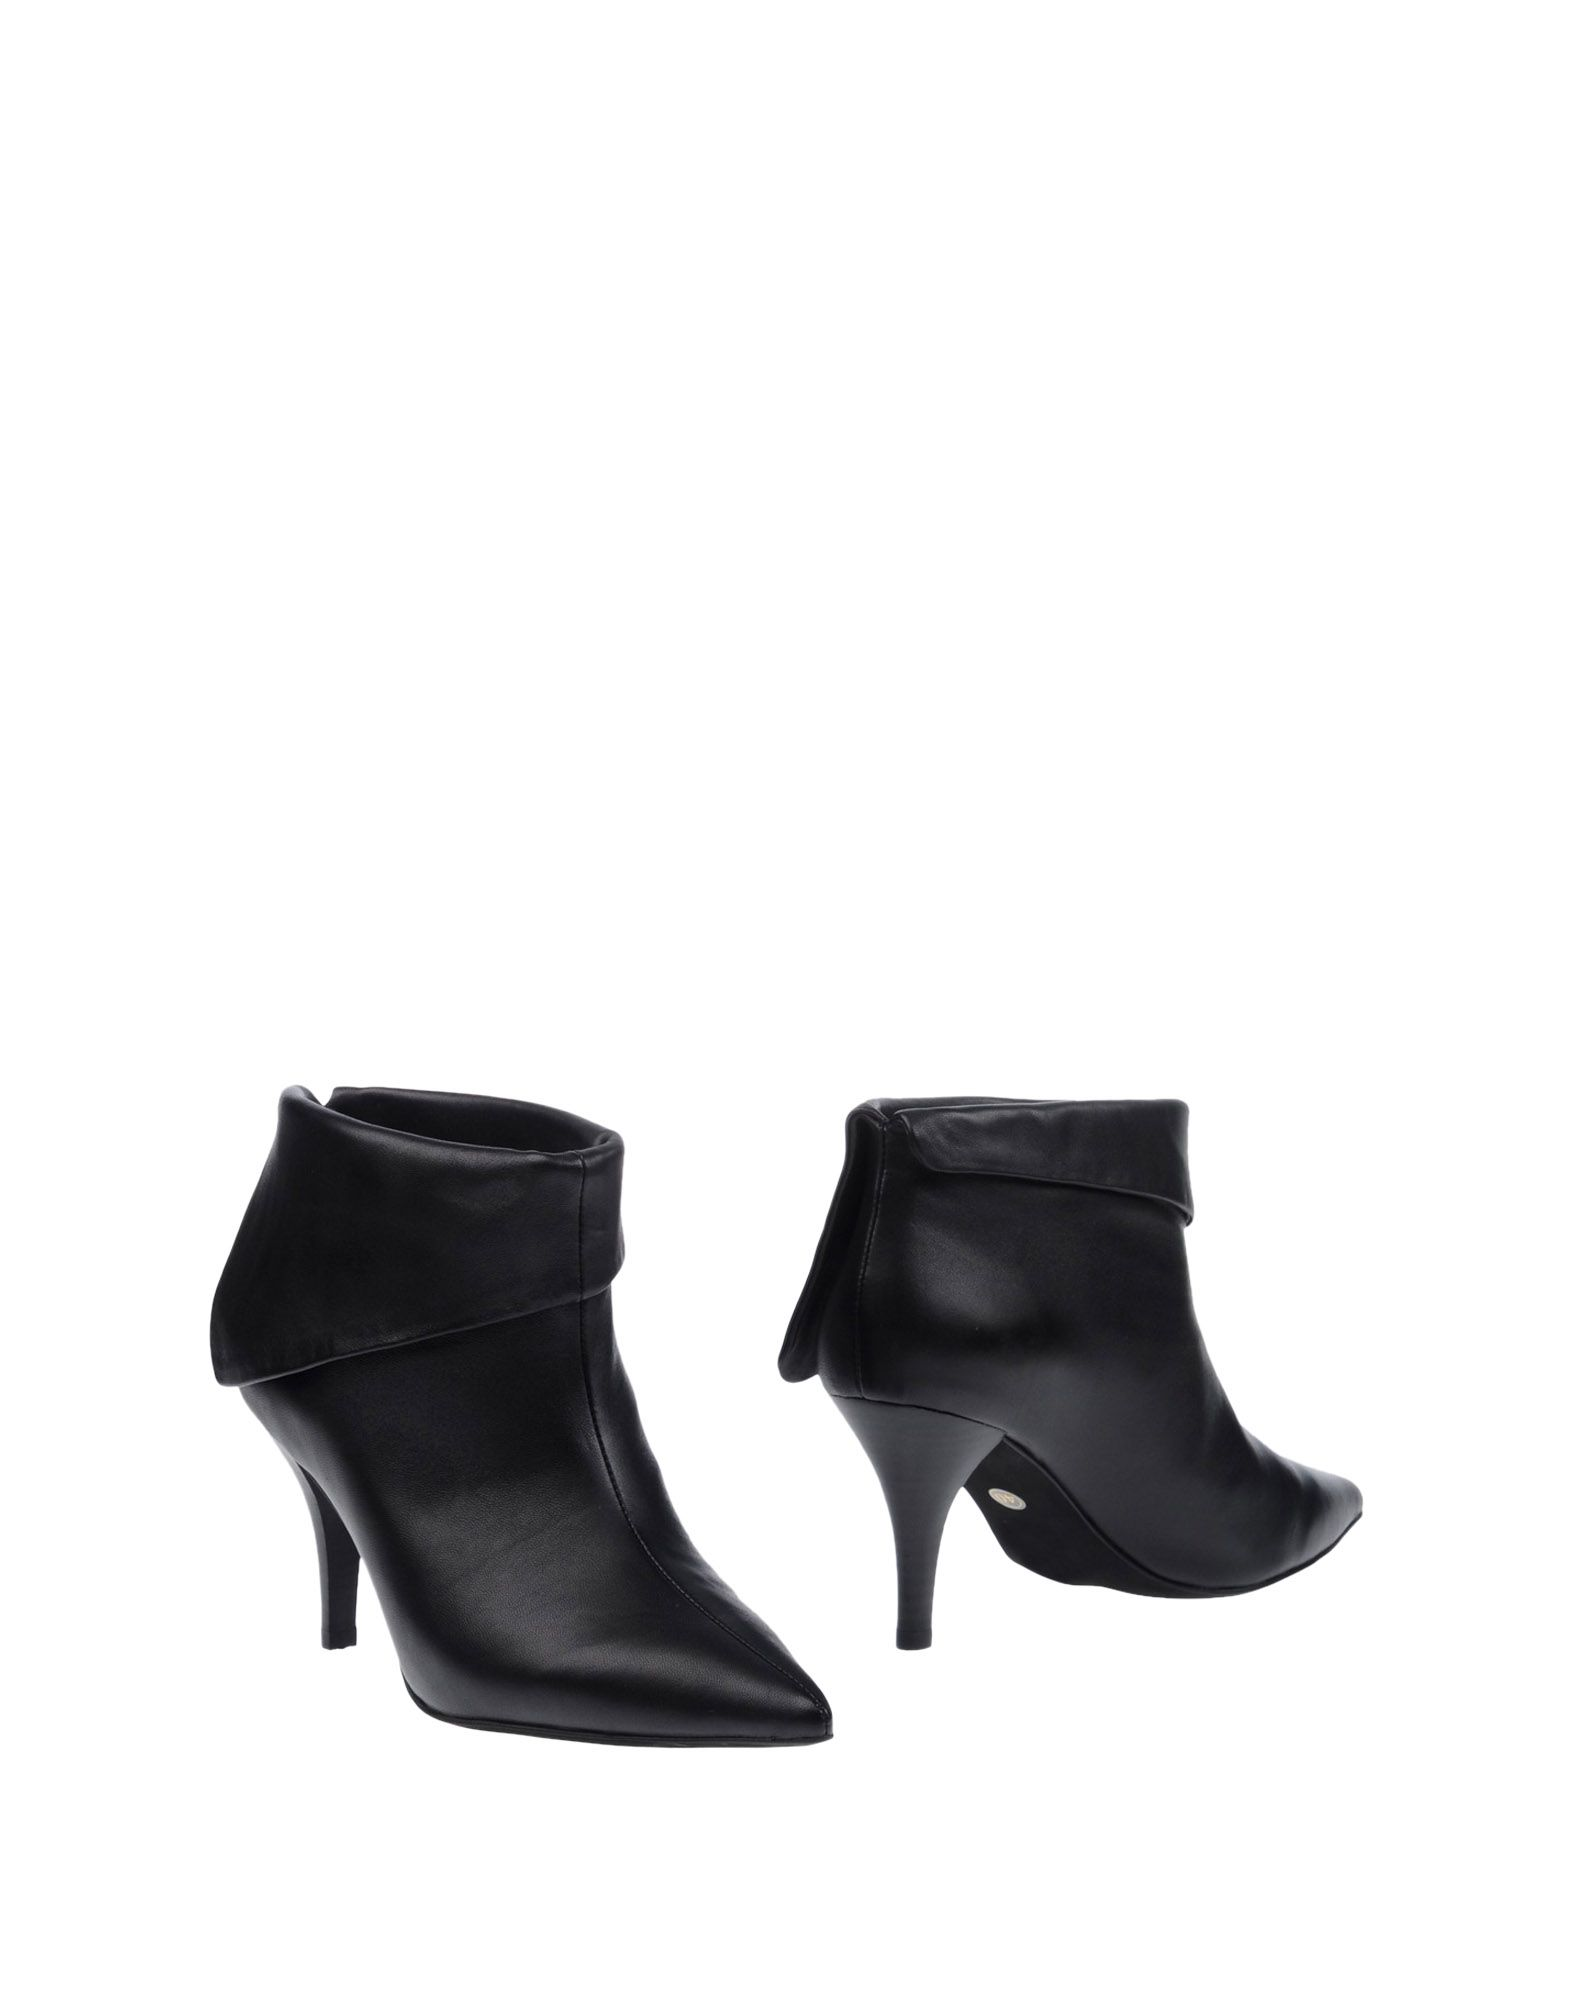 Jeffrey Campbell Ankle Boot - Women Jeffrey Campbell Ankle Boots - online on  Canada - Boots 11252518IW 880166